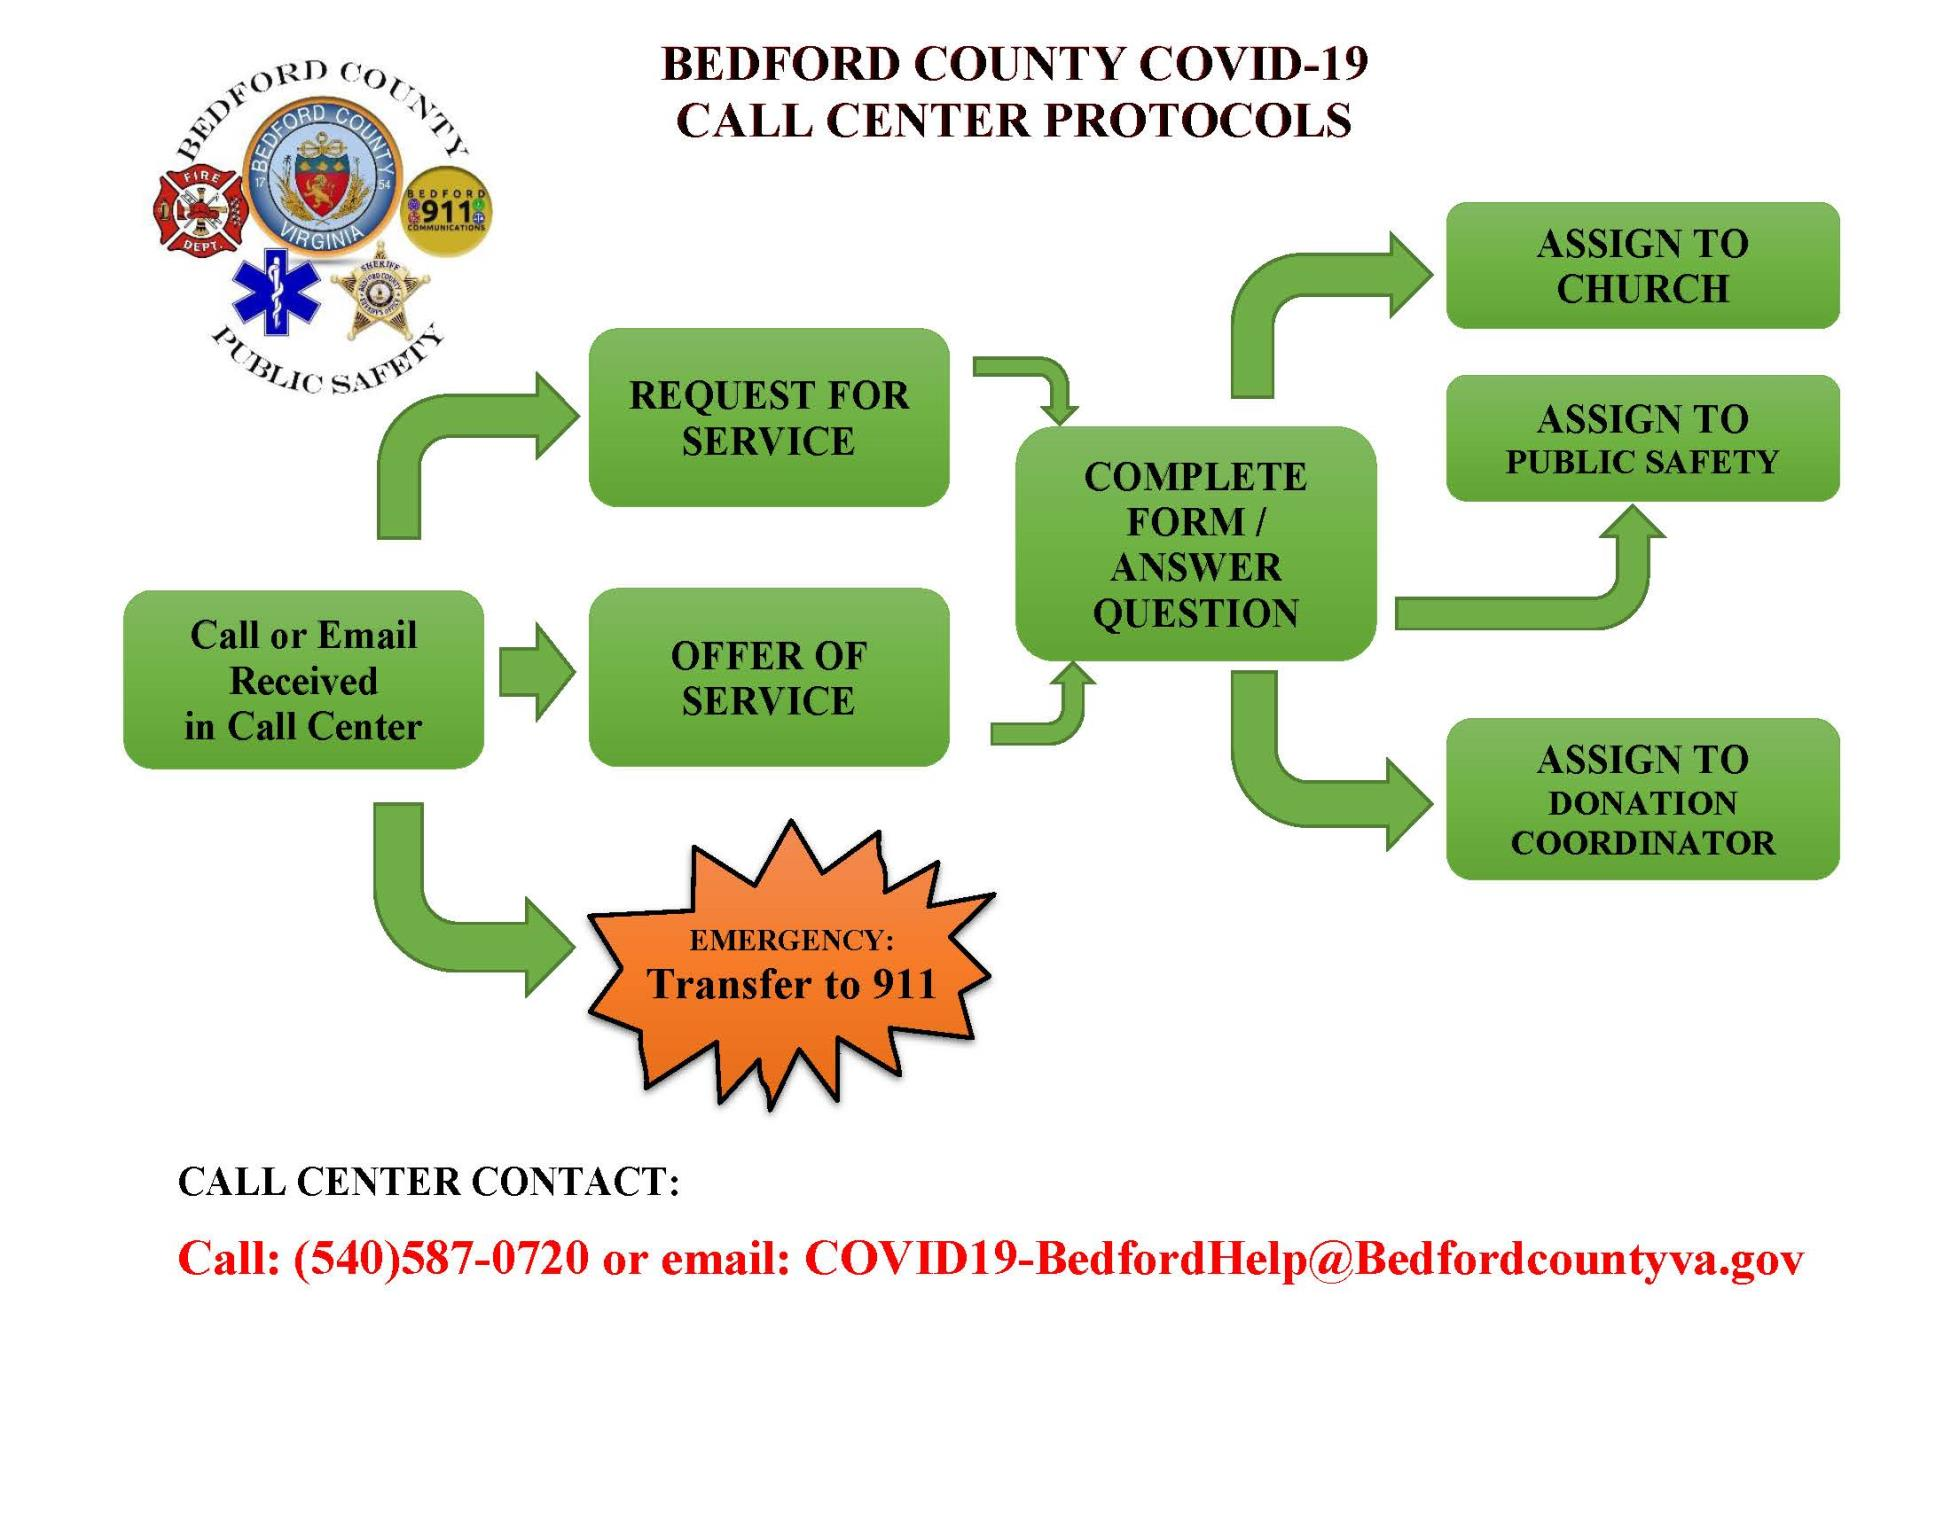 Pet Friendly Renals For Christmas Week Bedford County Va 2020 County Response to COVID 19 | County of Bedford, Virginia